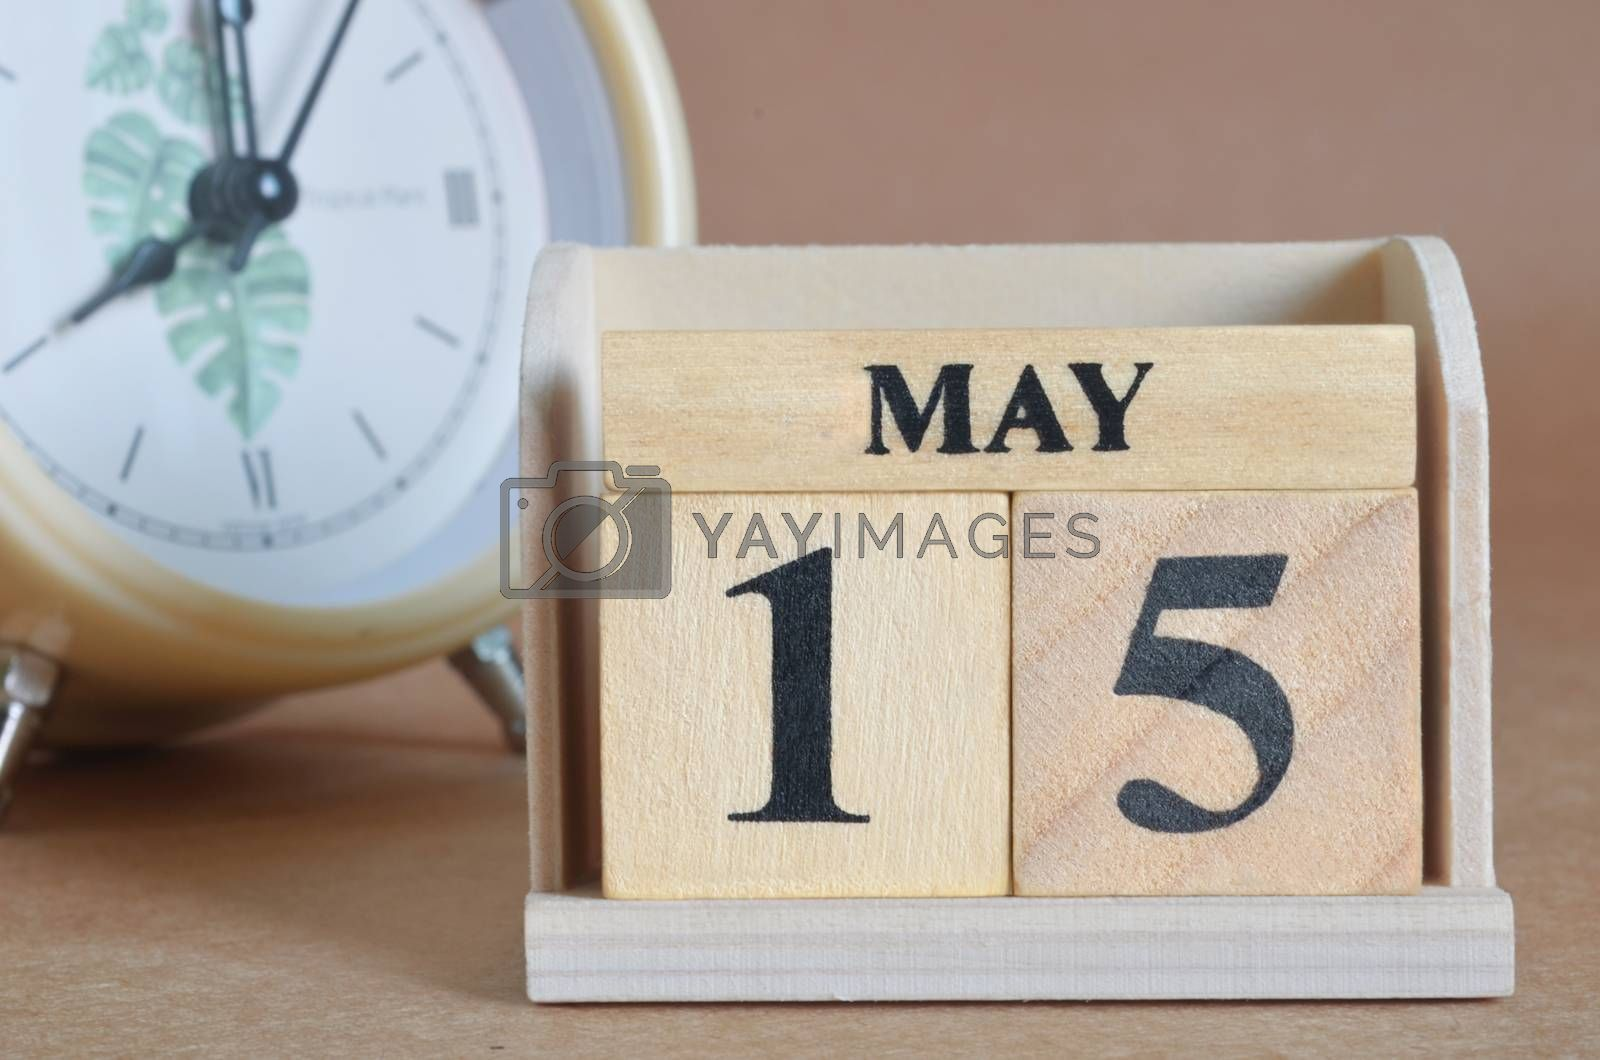 May 15 by Mrfrost